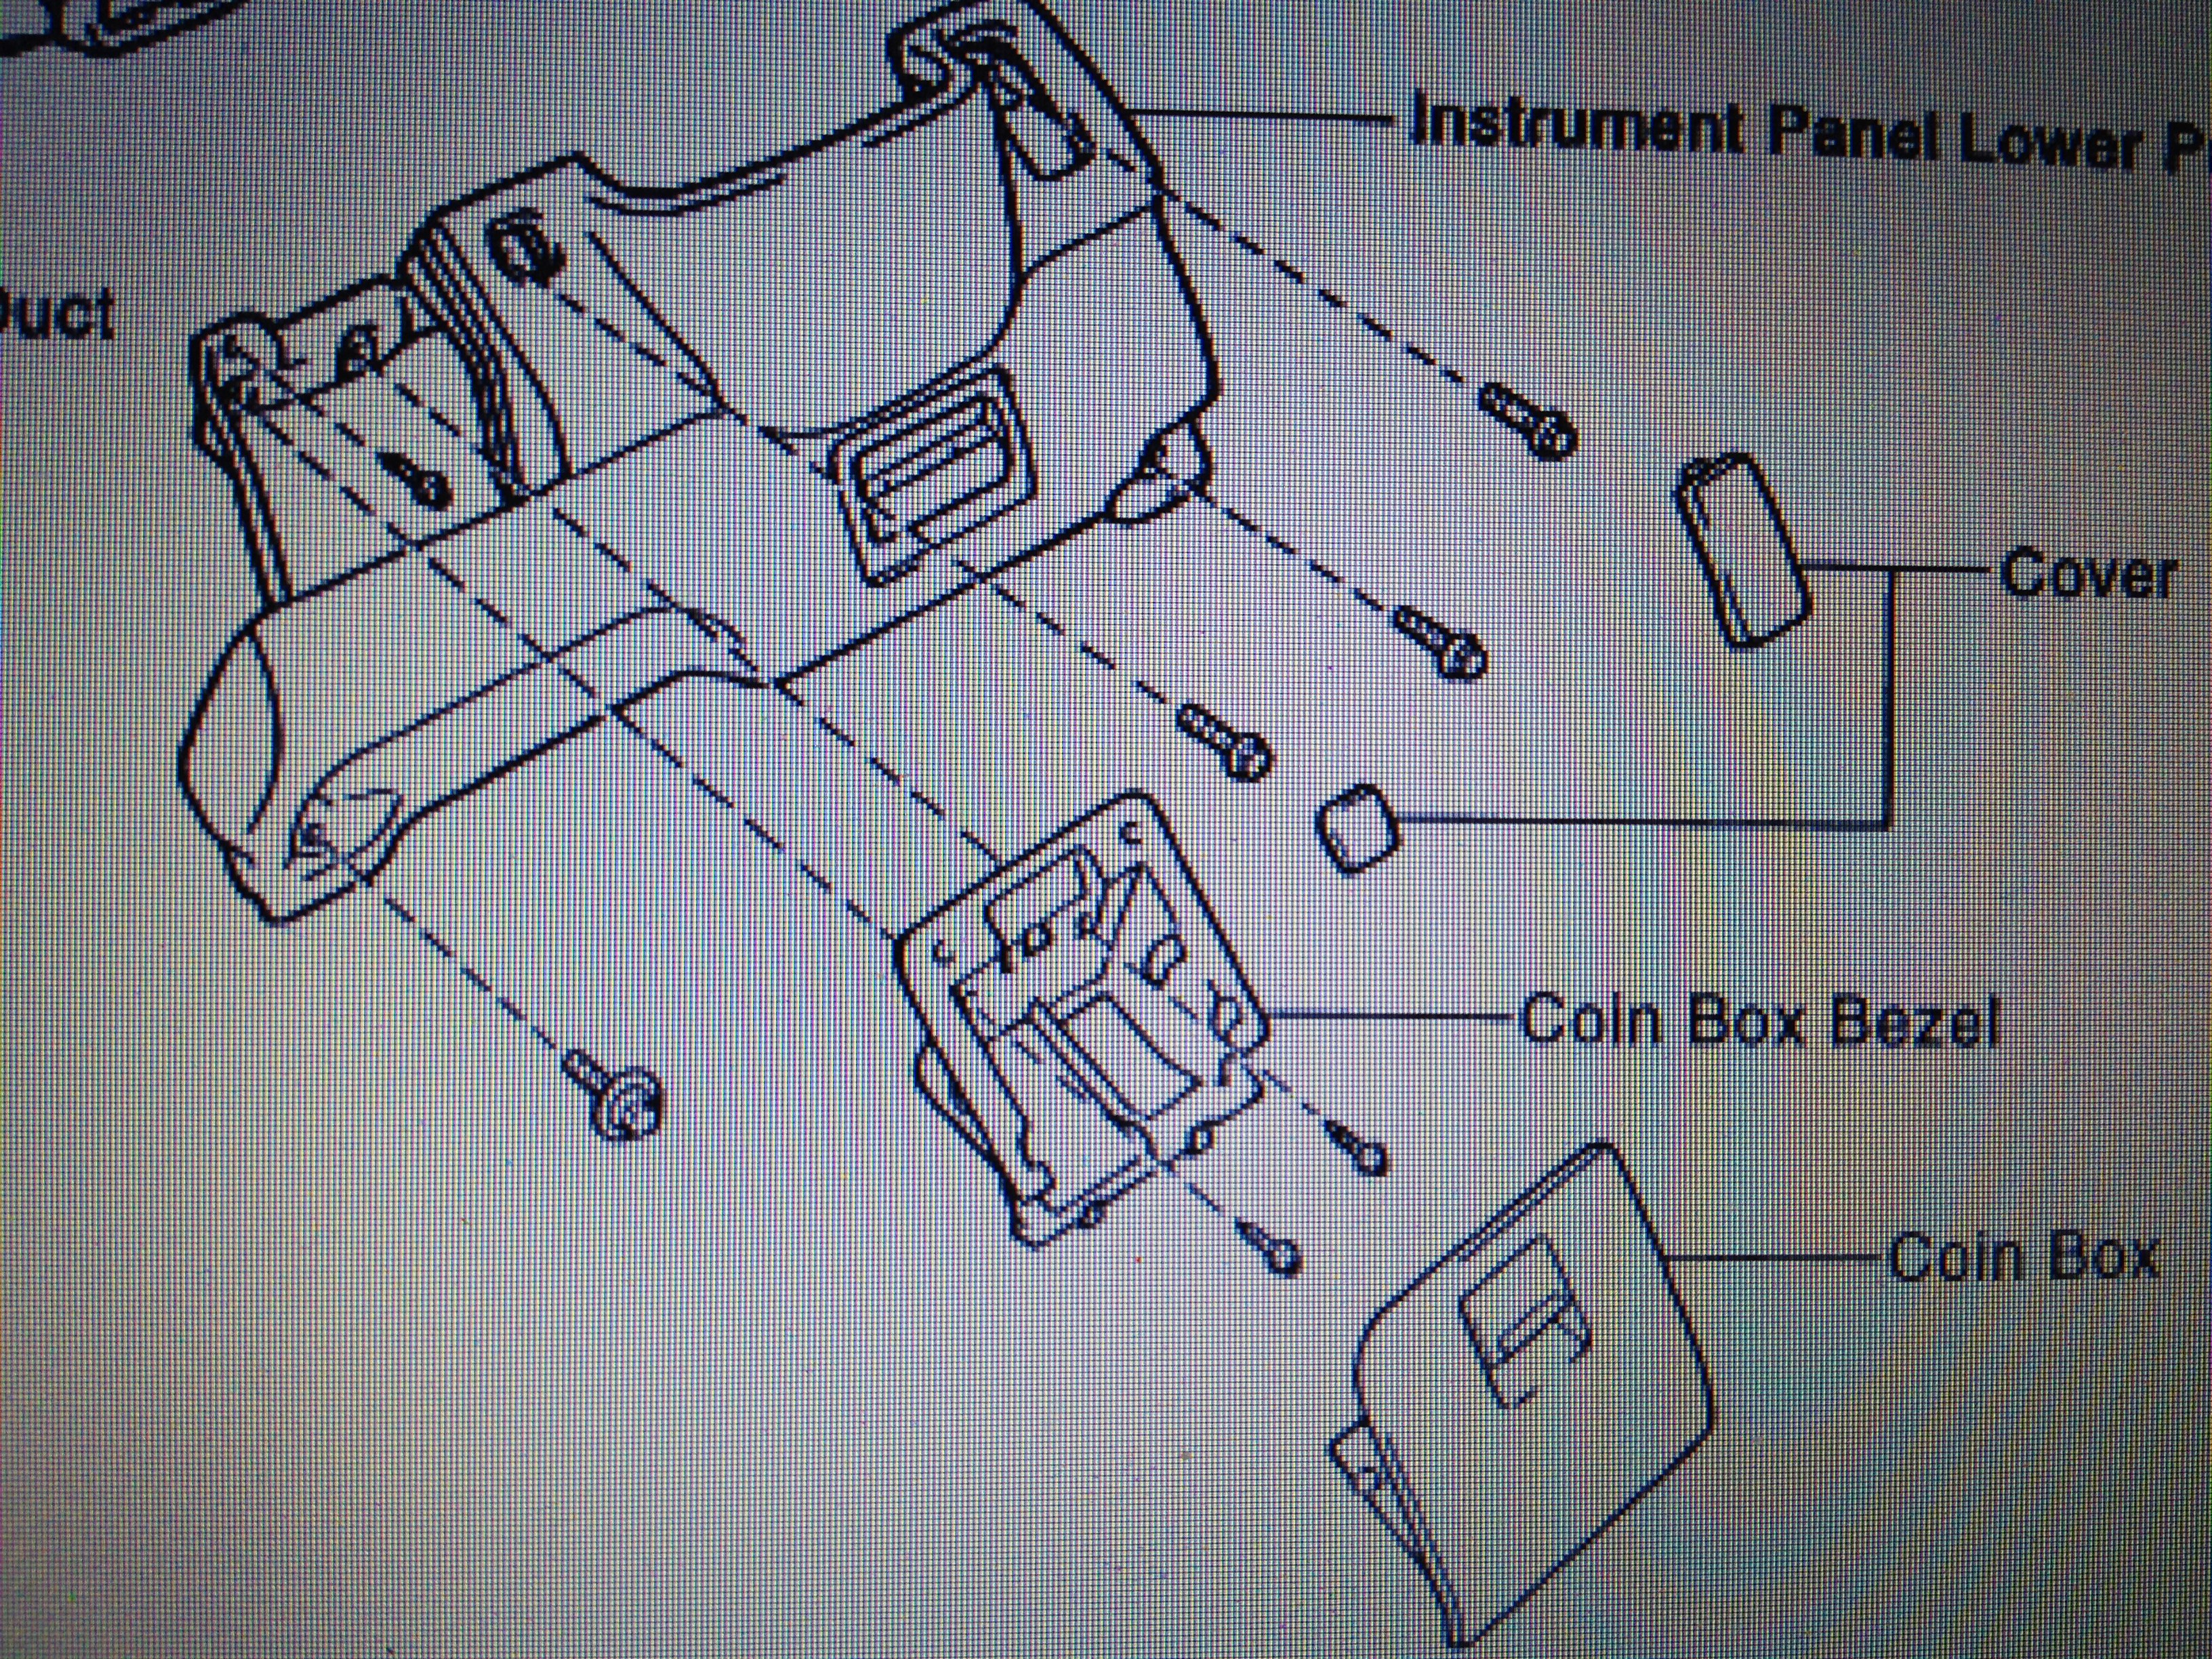 toyota camry le i have a 1996 toyota camry le the windows b remove the 2 screws and coin box bezel from the pad c remove the 2 covers from the pad d remove the pad set screw and 4 pad set bolts